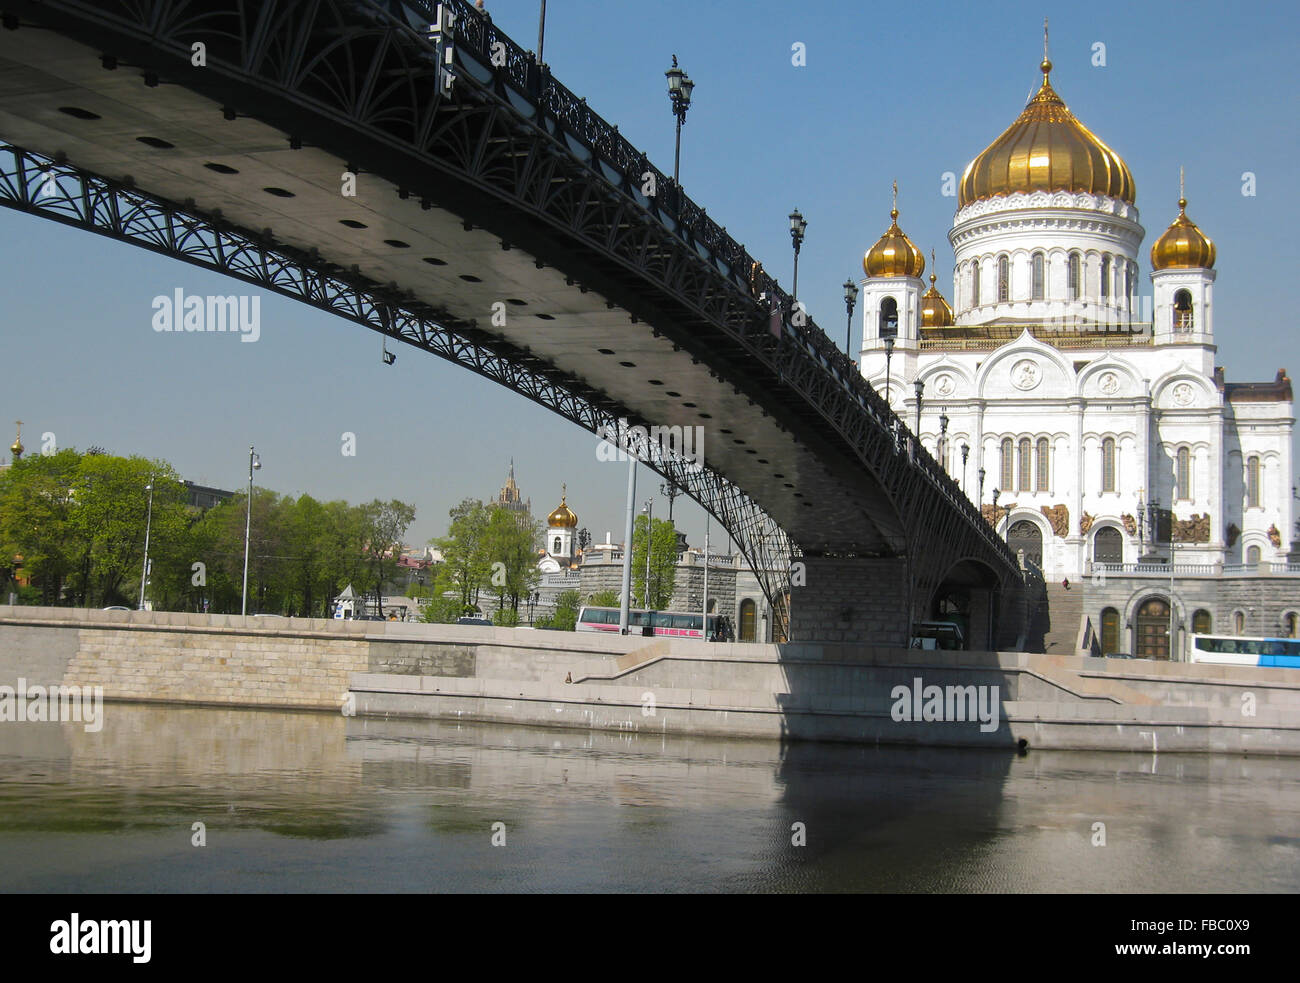 Moscow, cathedral of Jesus Christ Saviour - the biggest in the city. Date of recording 30.04.2008. - Stock Image